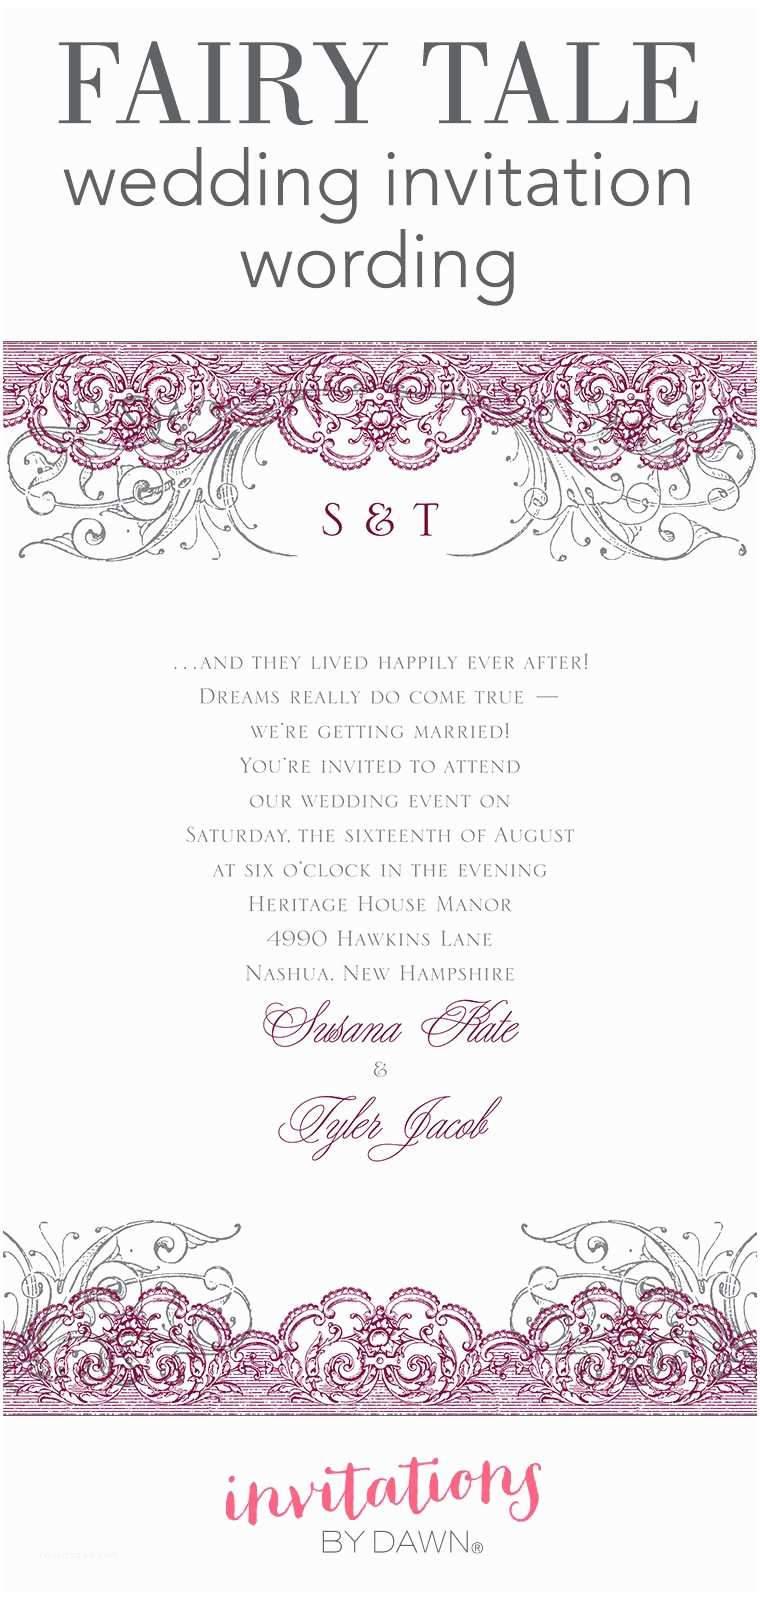 Wedding Invitation Sample Wording Fairy Tale Wedding Invitation Wording